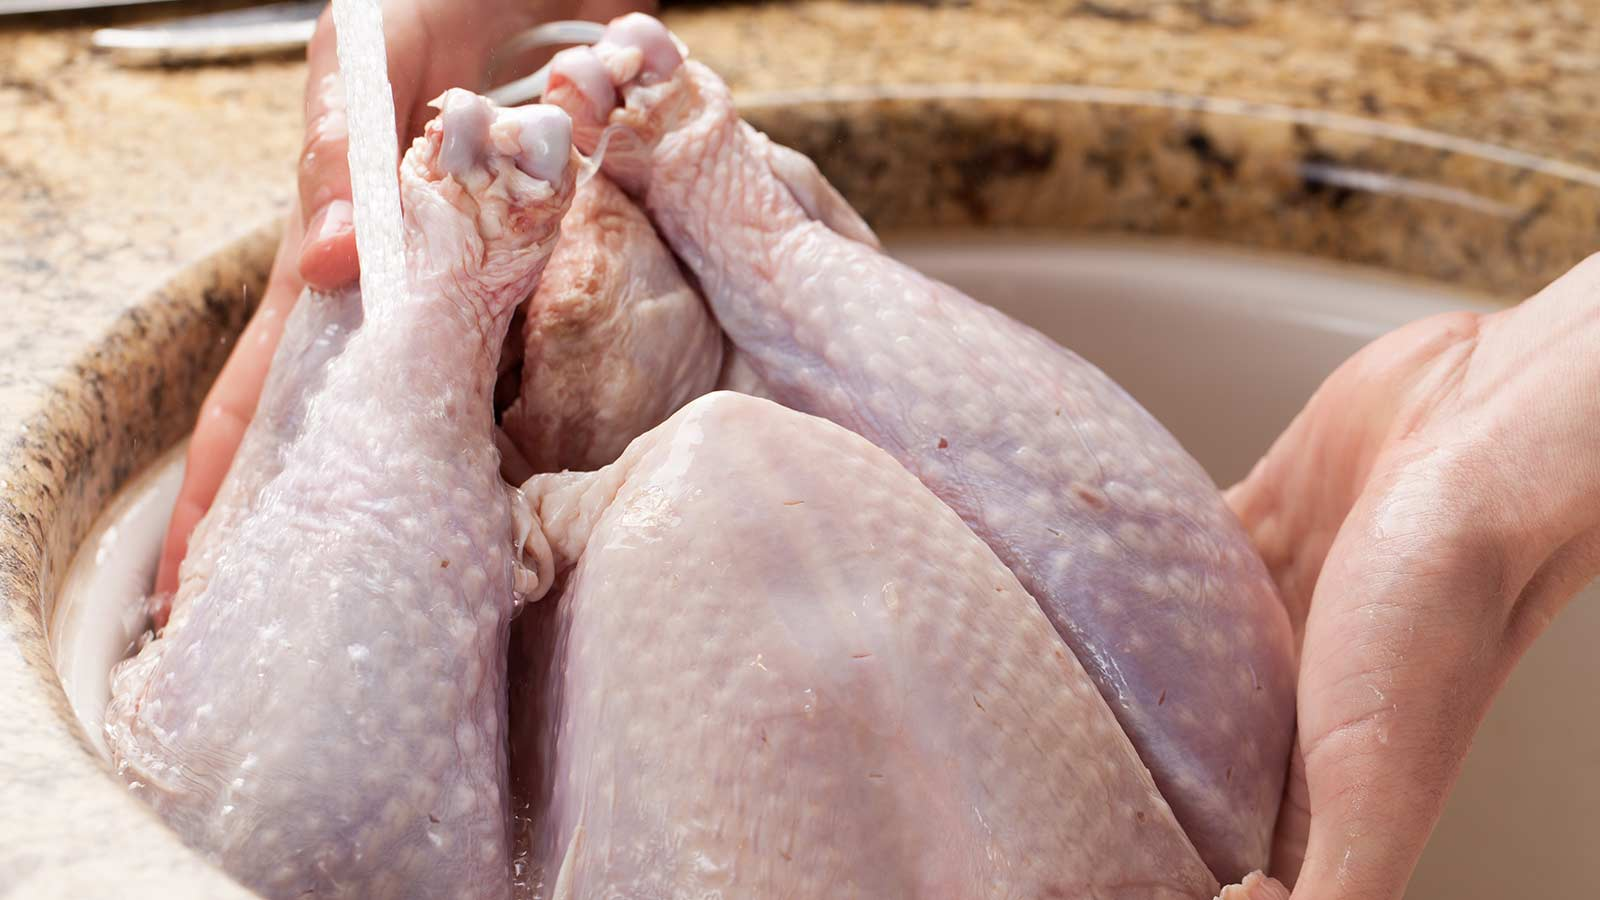 Hands washing a raw turkey in a sink.